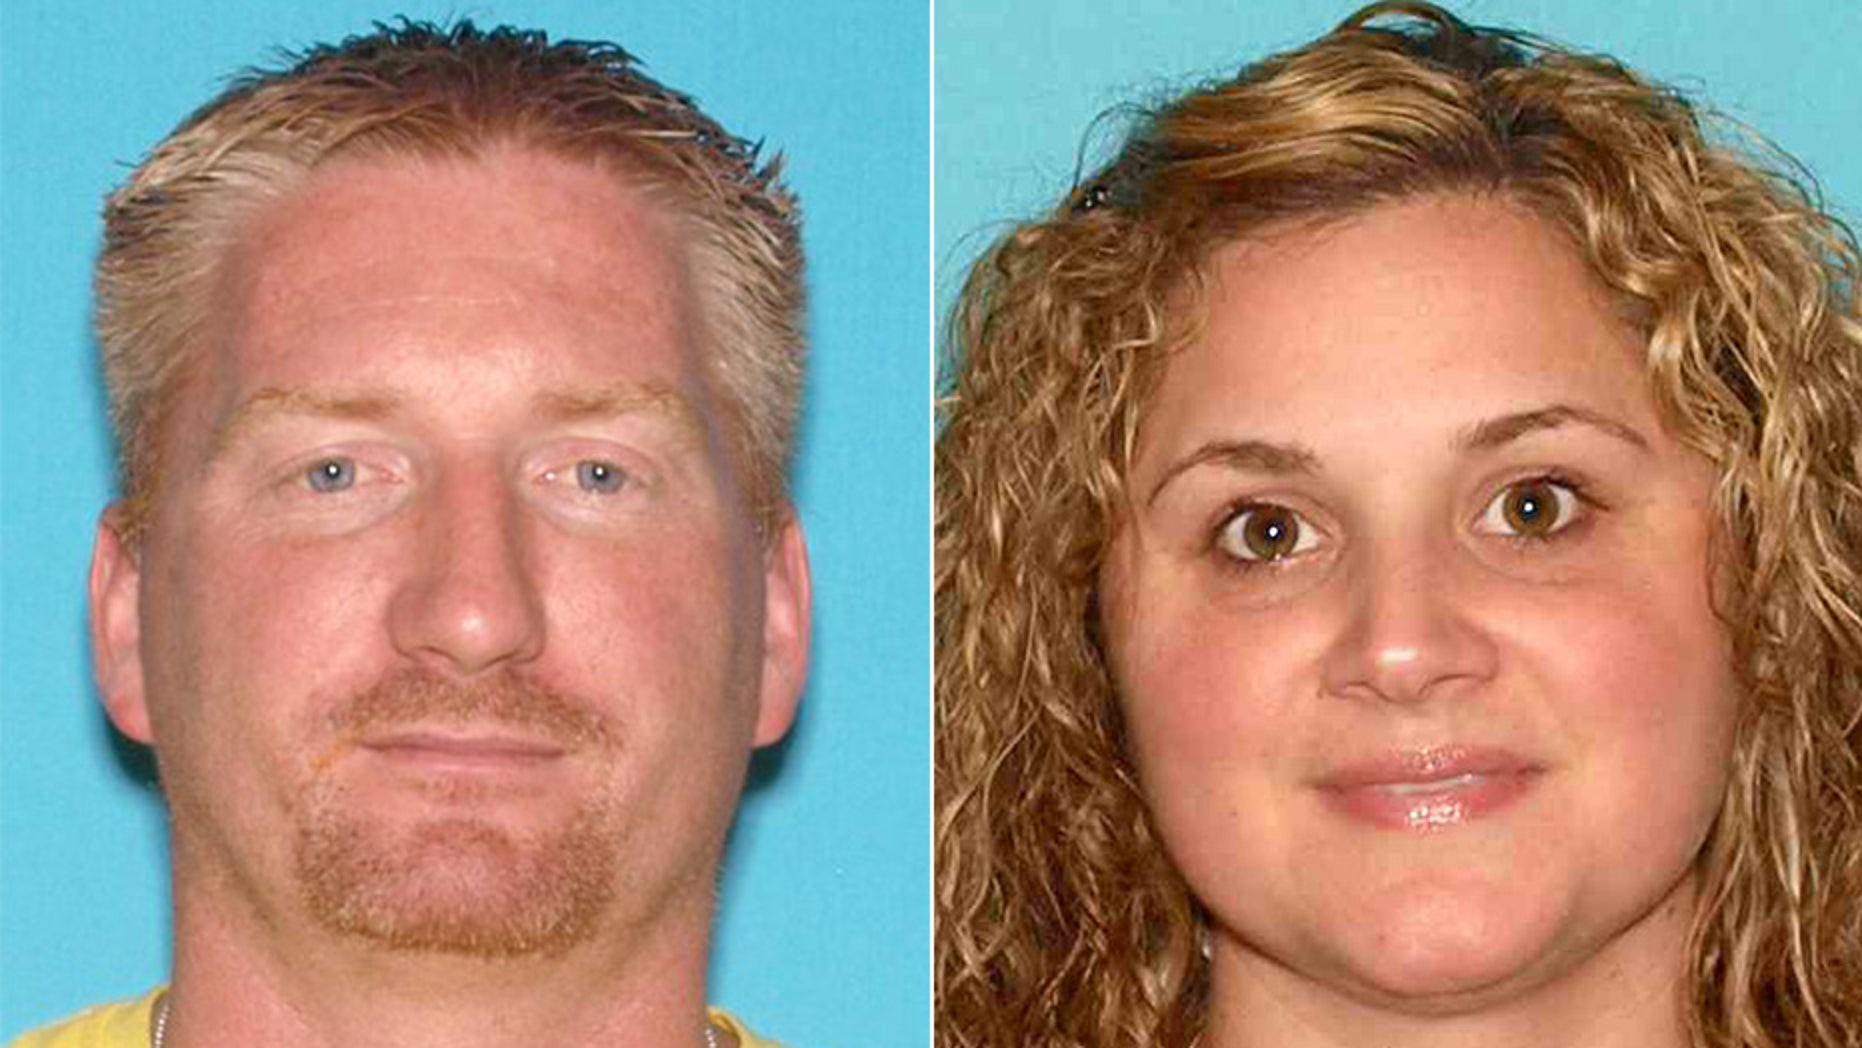 New Jersey's attorney general announced Tuesday that Jeffrey Colmyer and Tiffany Cimino had pleaded guilty to charges of theft by failure to make required disposition of property.